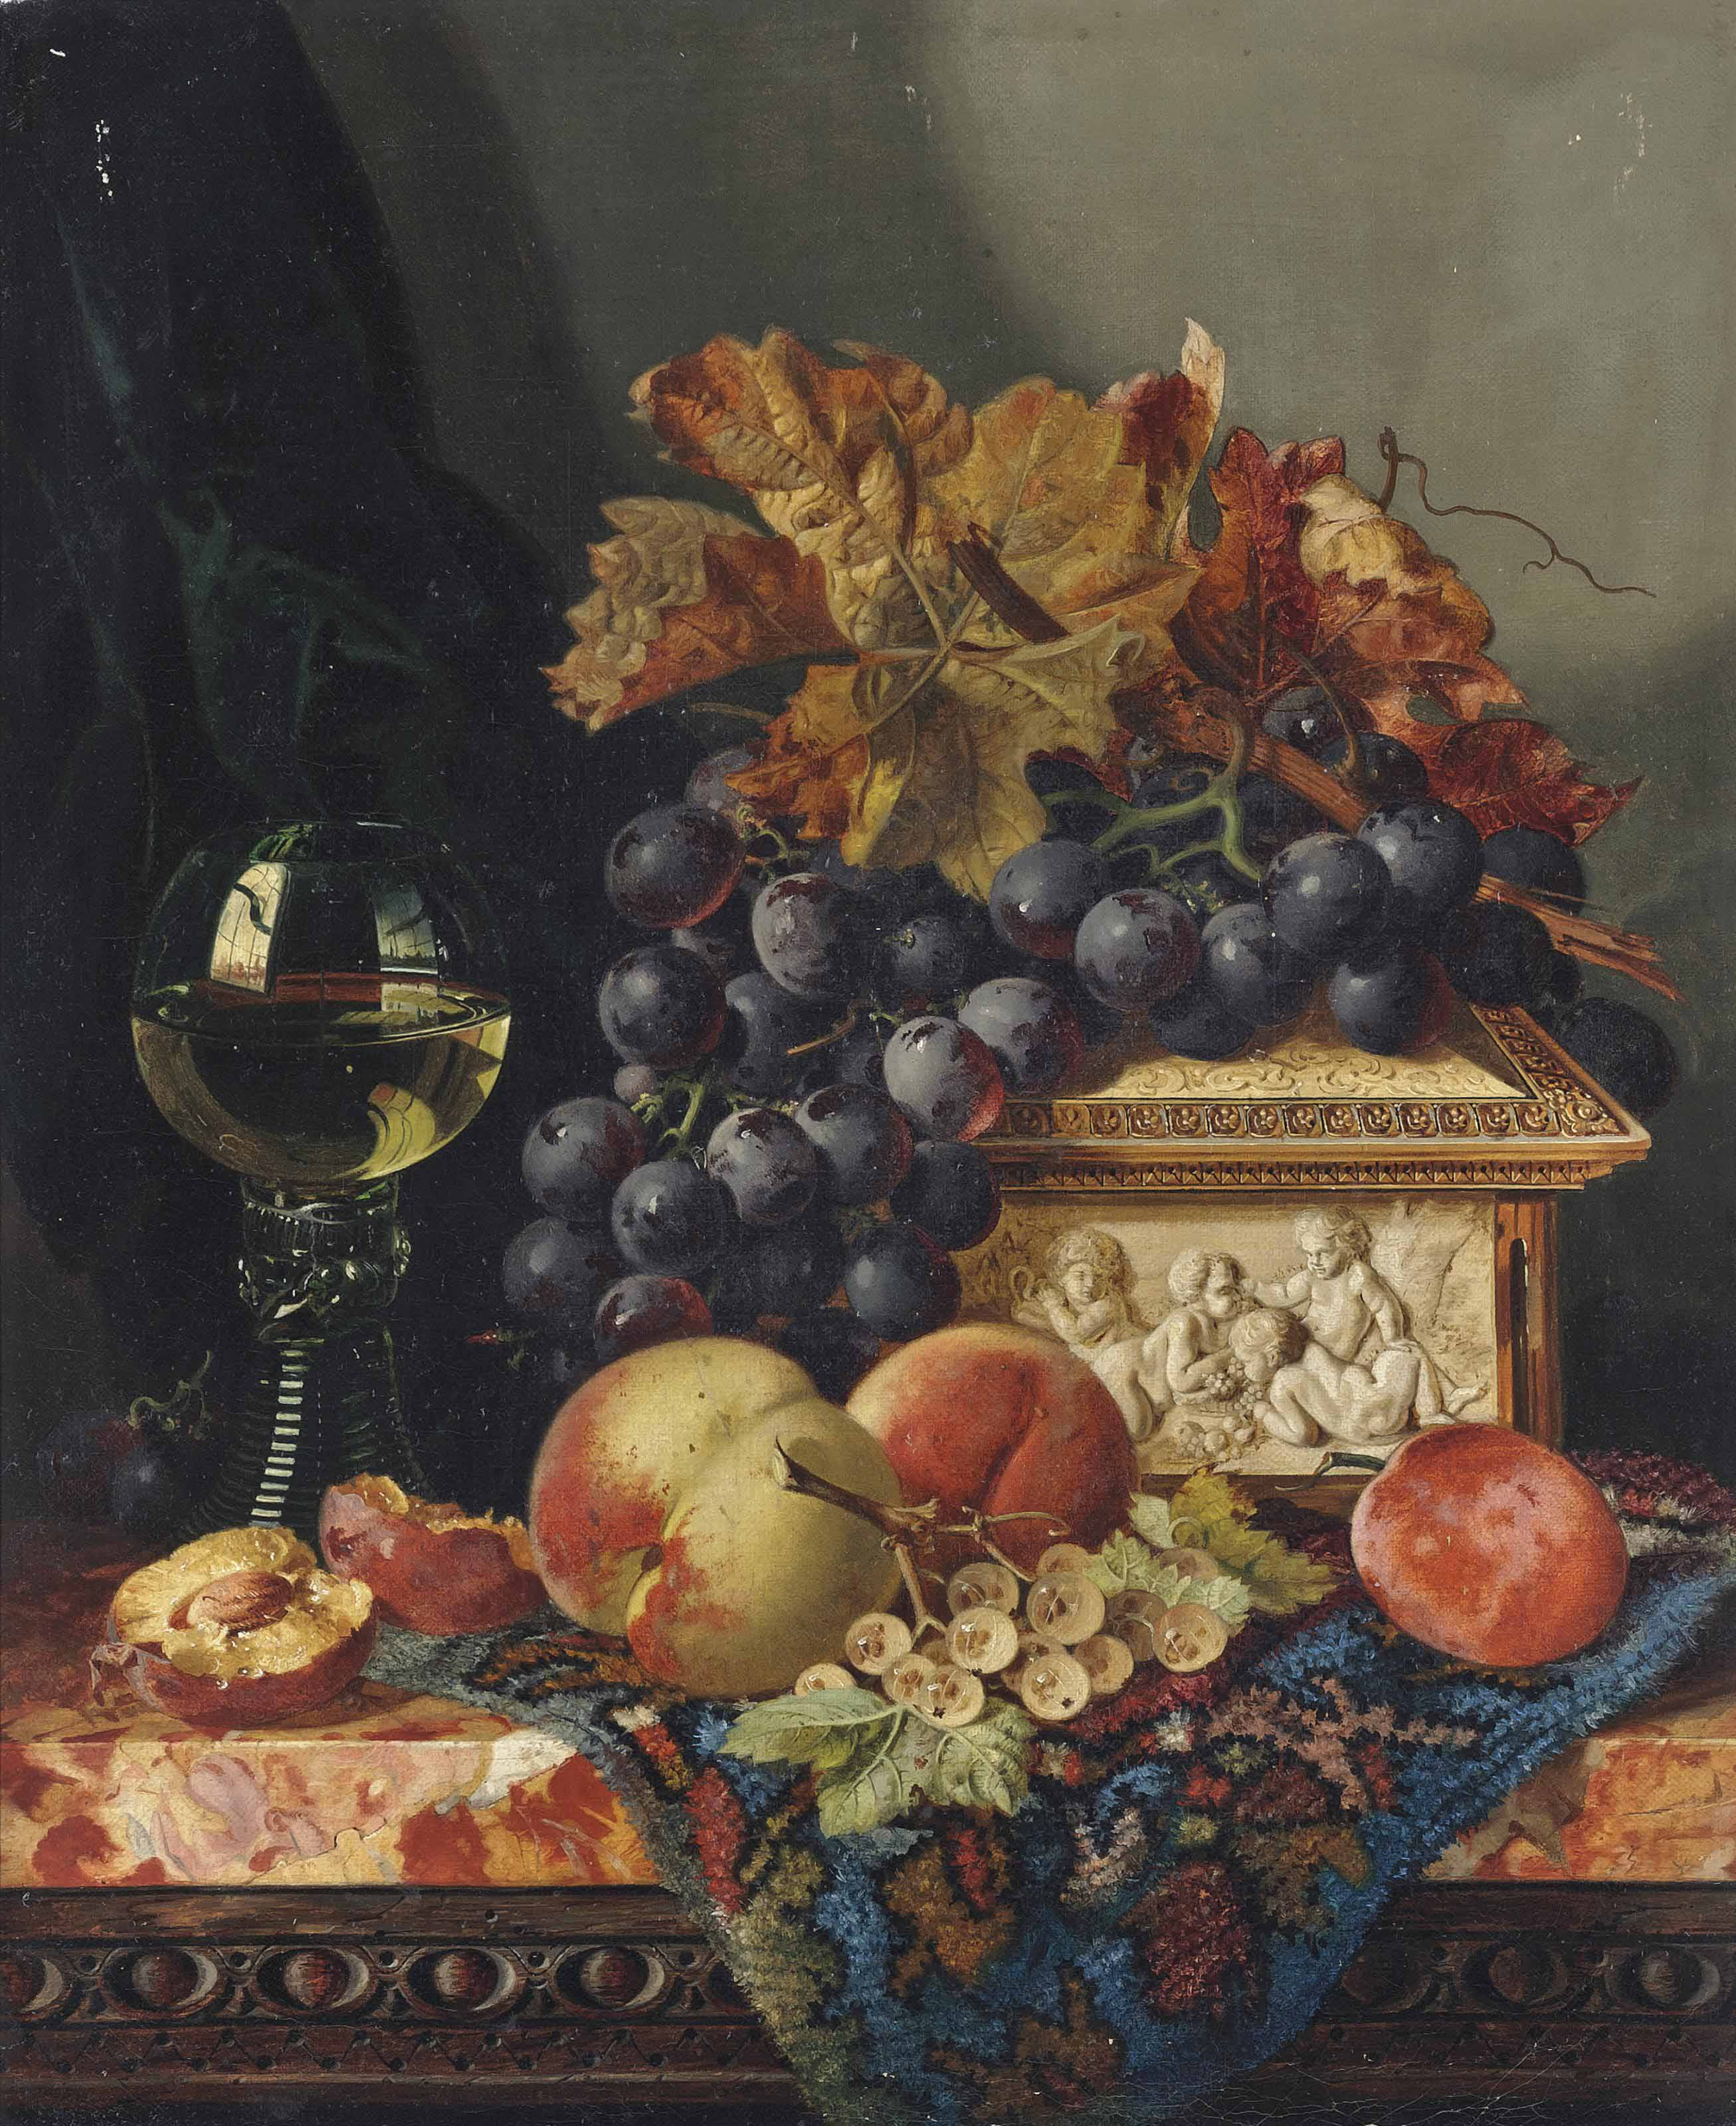 A glass of wine, grapes, peaches, white currants, and an ivory box, on a marble ledge